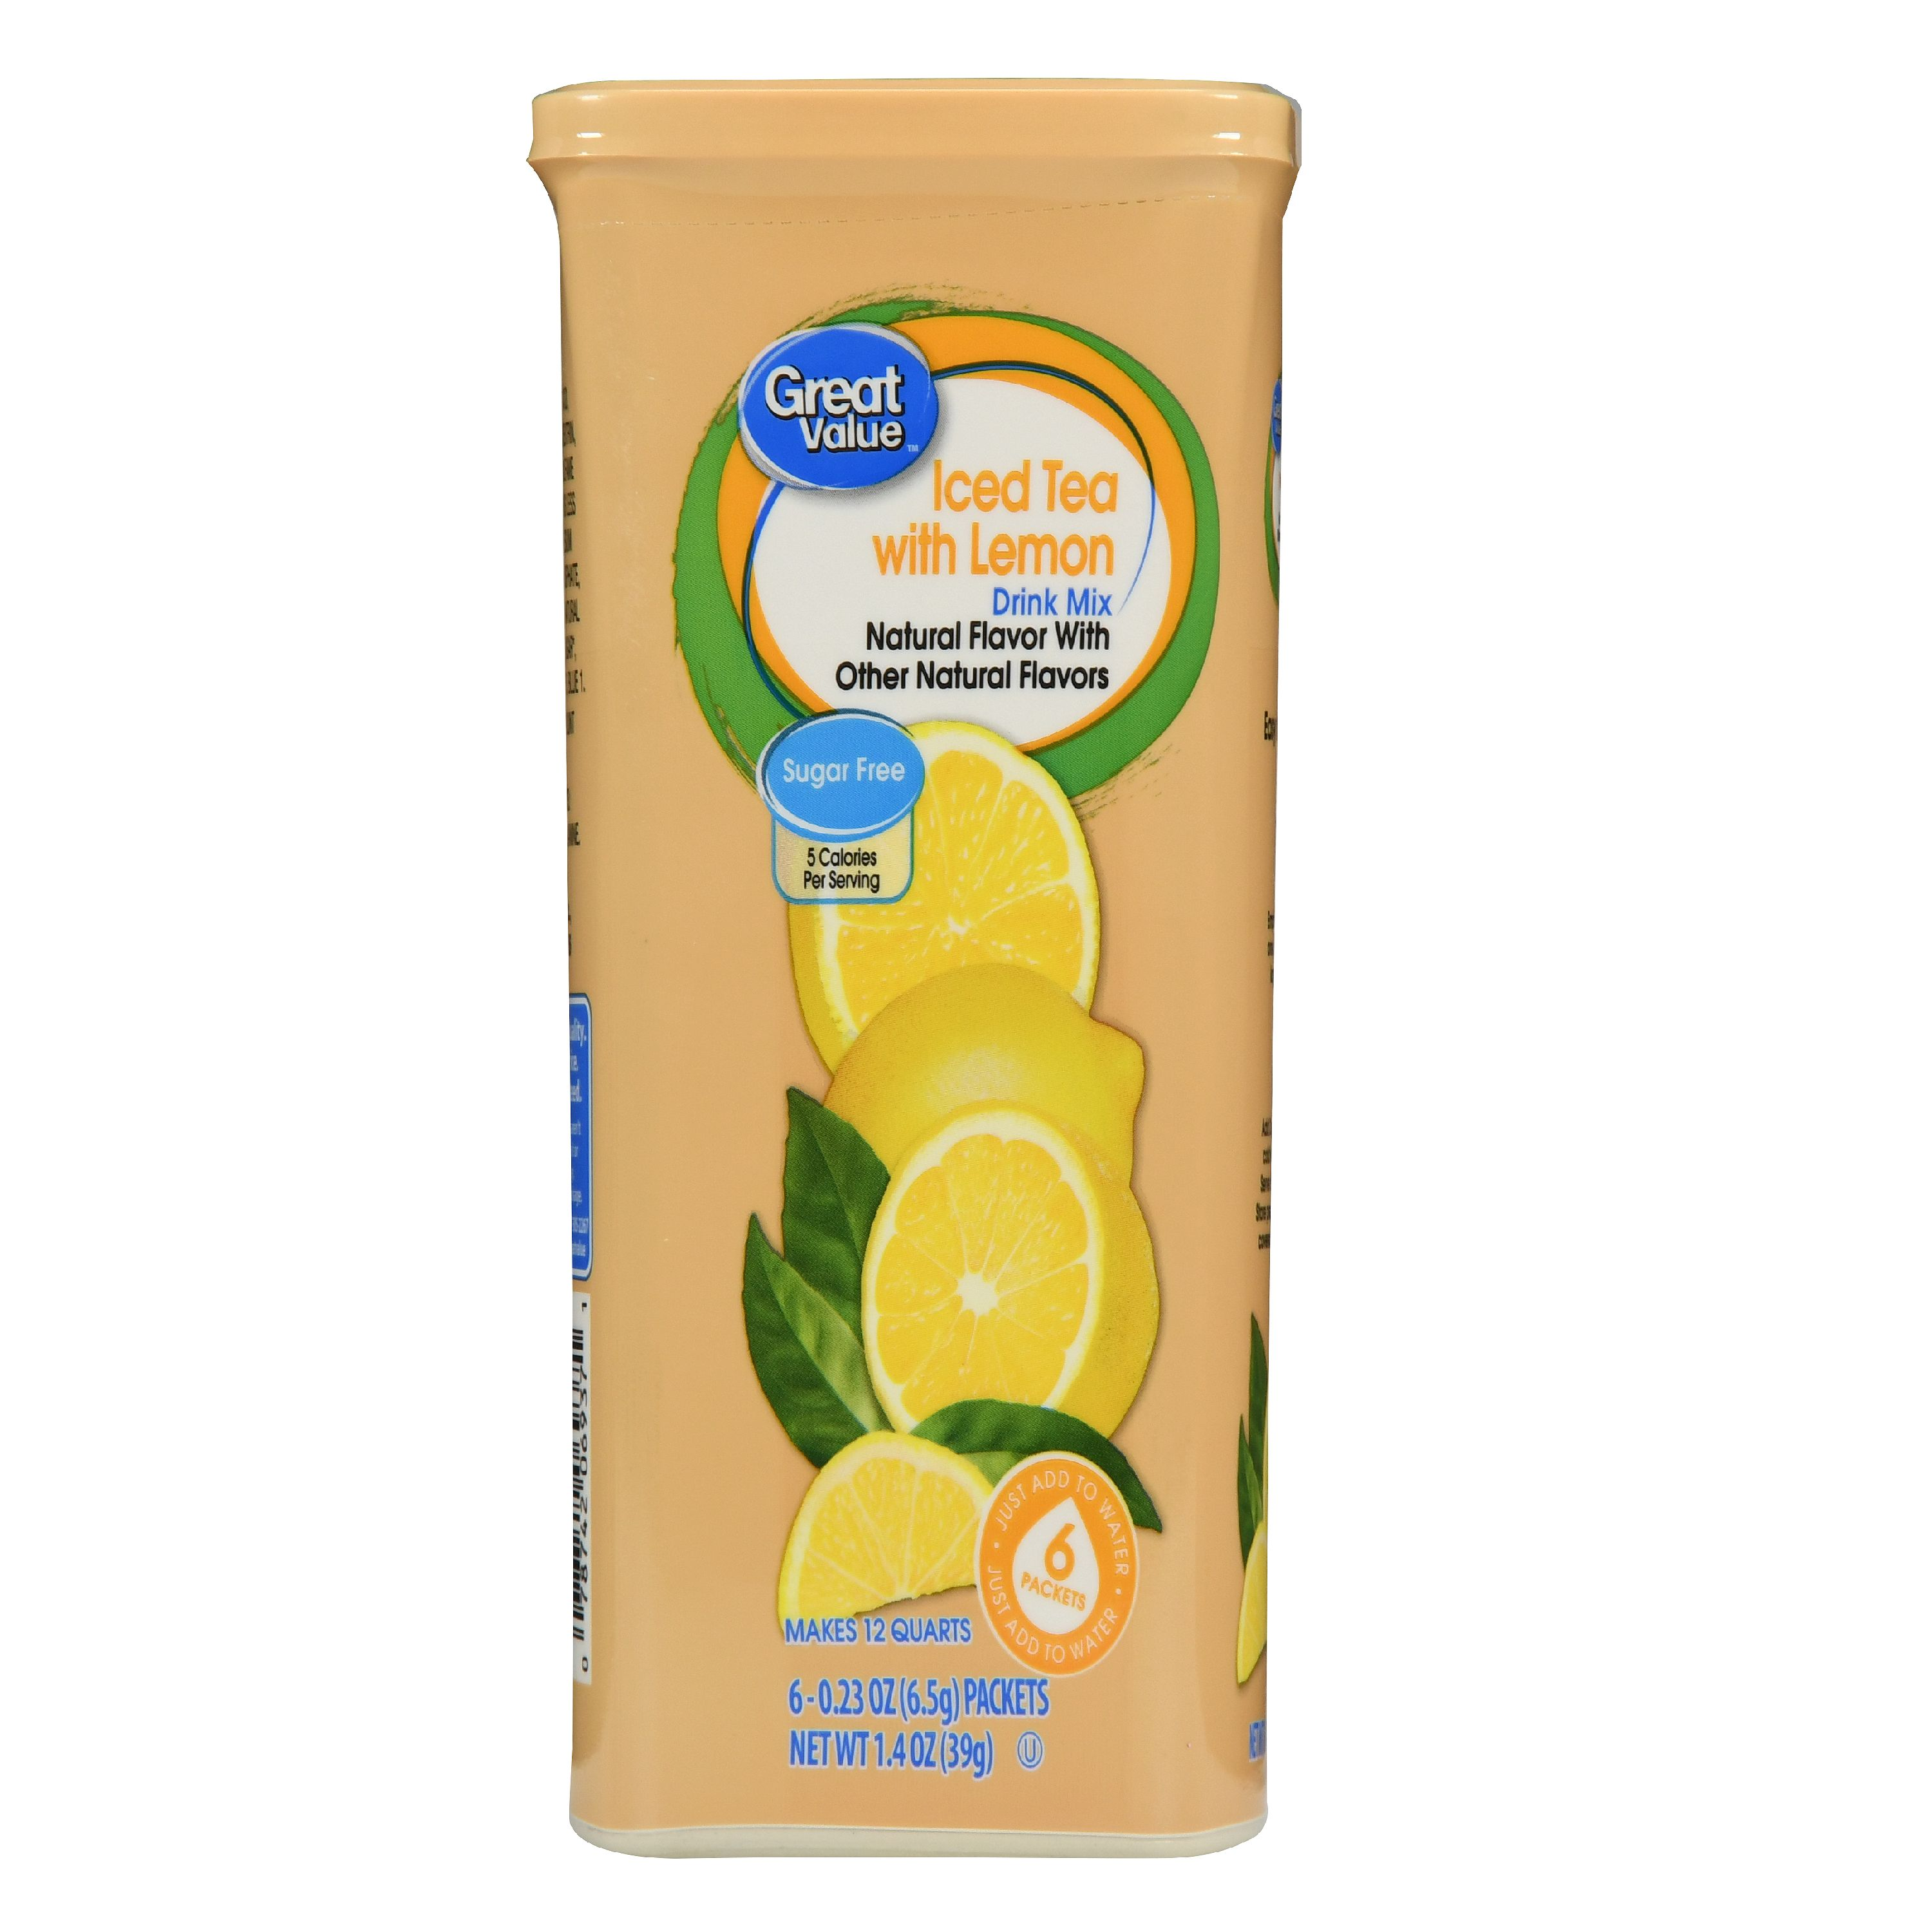 Great Value Drink Mix, Iced Tea with Lemon, Sugar-Free, 1.4 oz, 6 Count